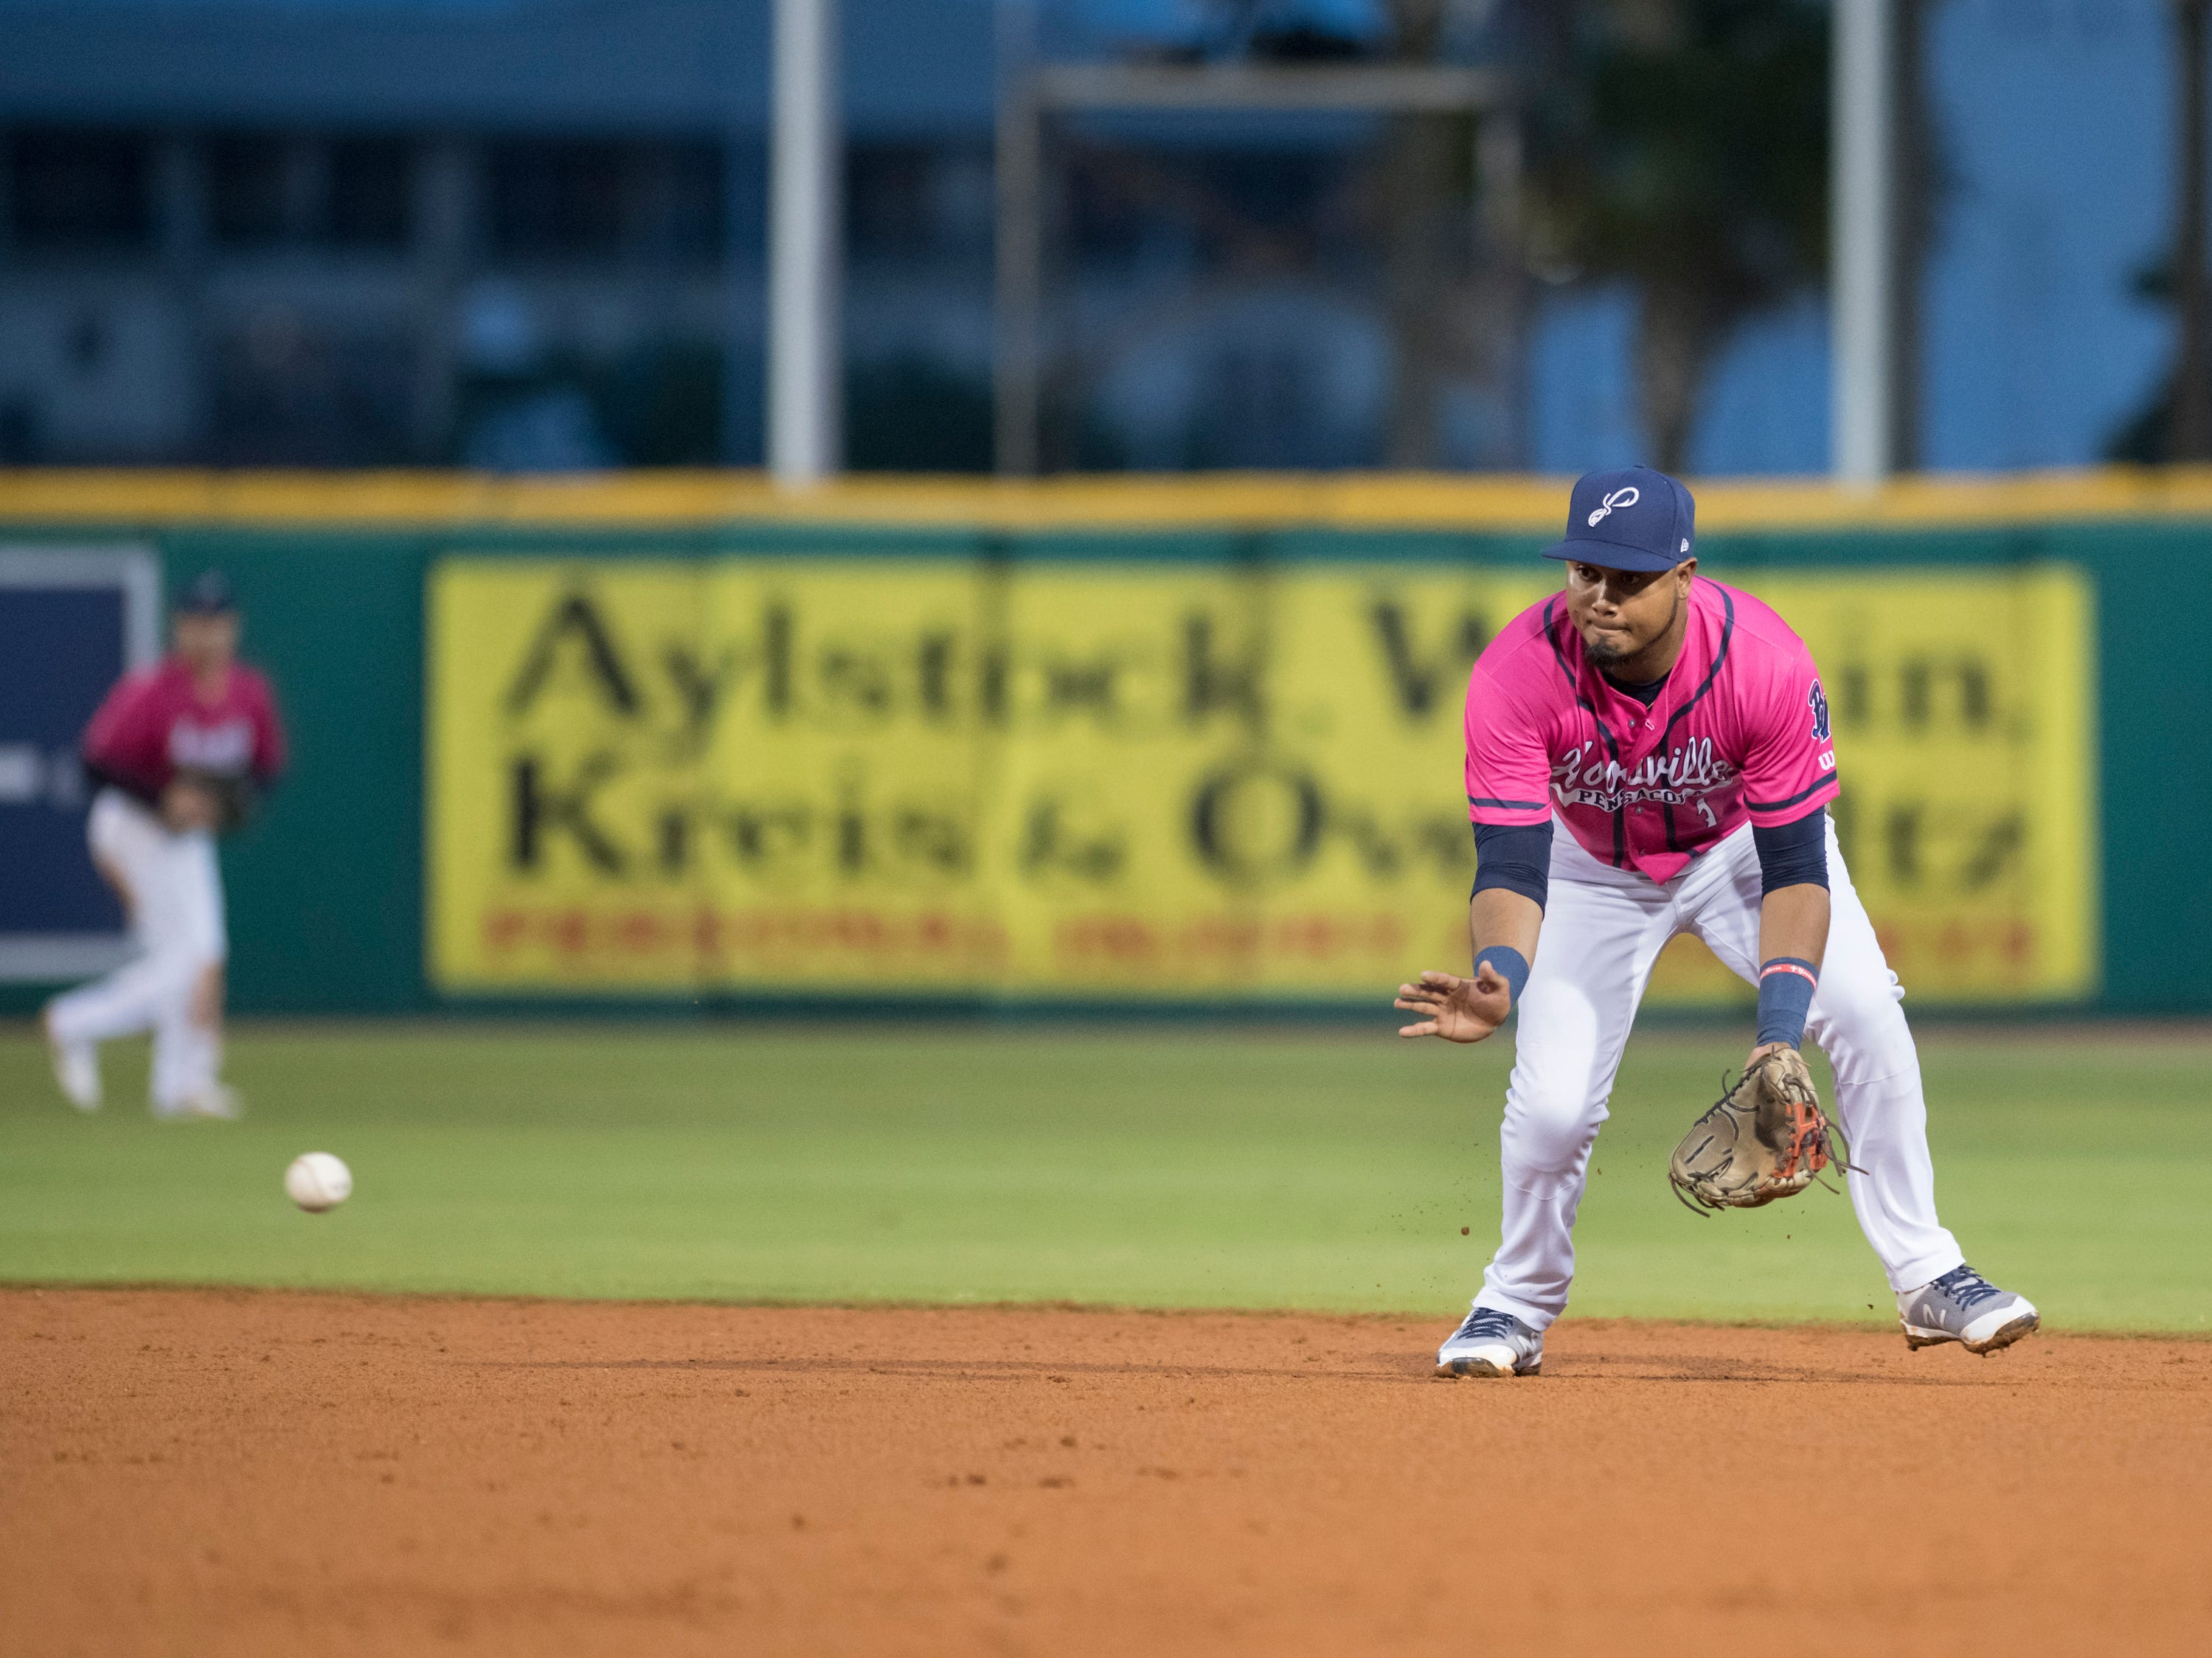 Second baseman Luis Arraez (1) fields a grounder for an out during the Jacksonville Jumbo Shrimp vs Pensacola Blue Wahoos baseball game in Pensacola on Friday, April 12, 2019.